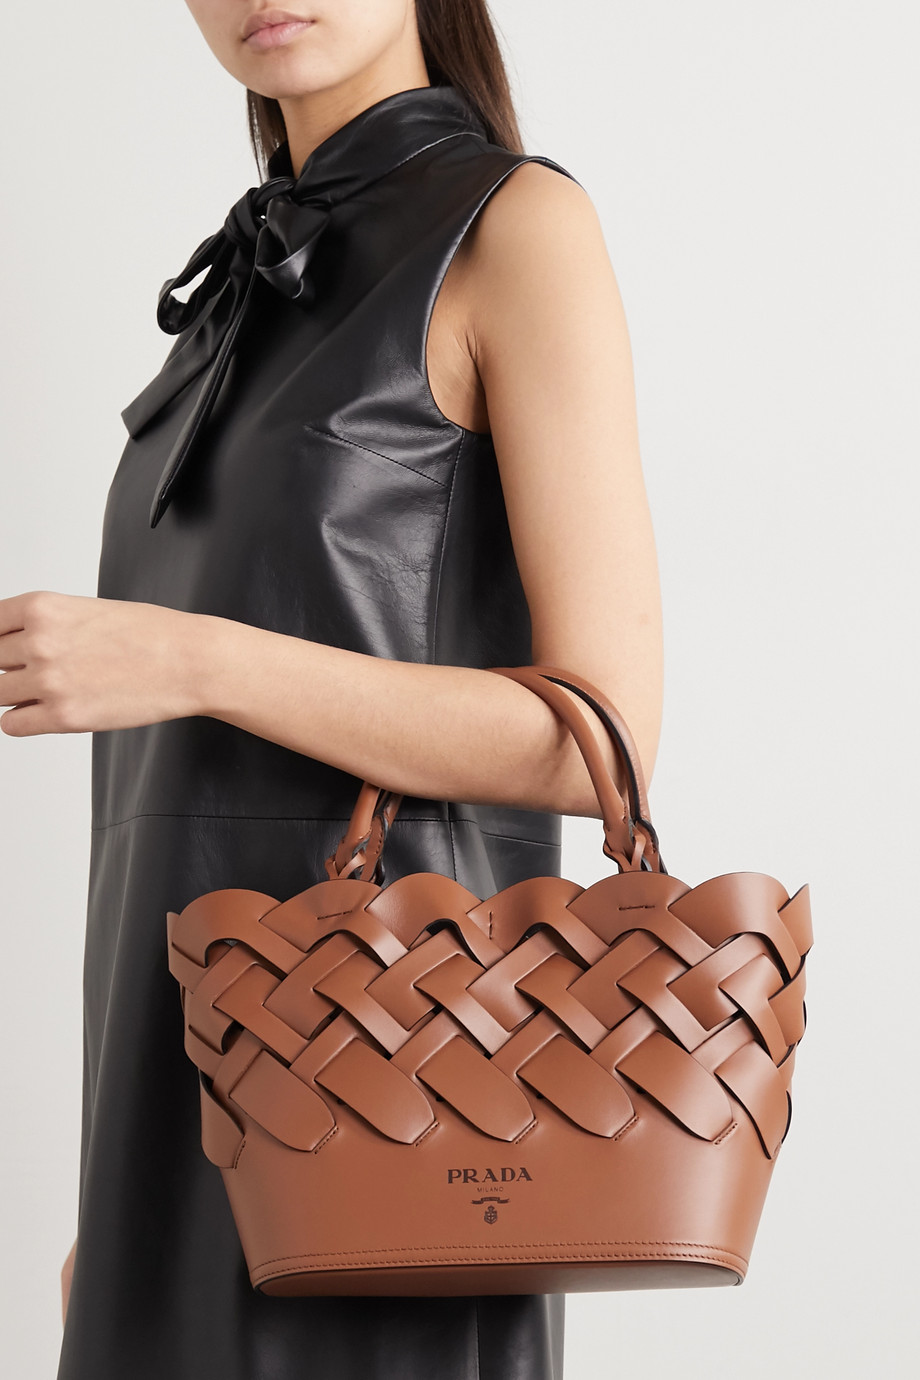 Prada Medium woven leather tote